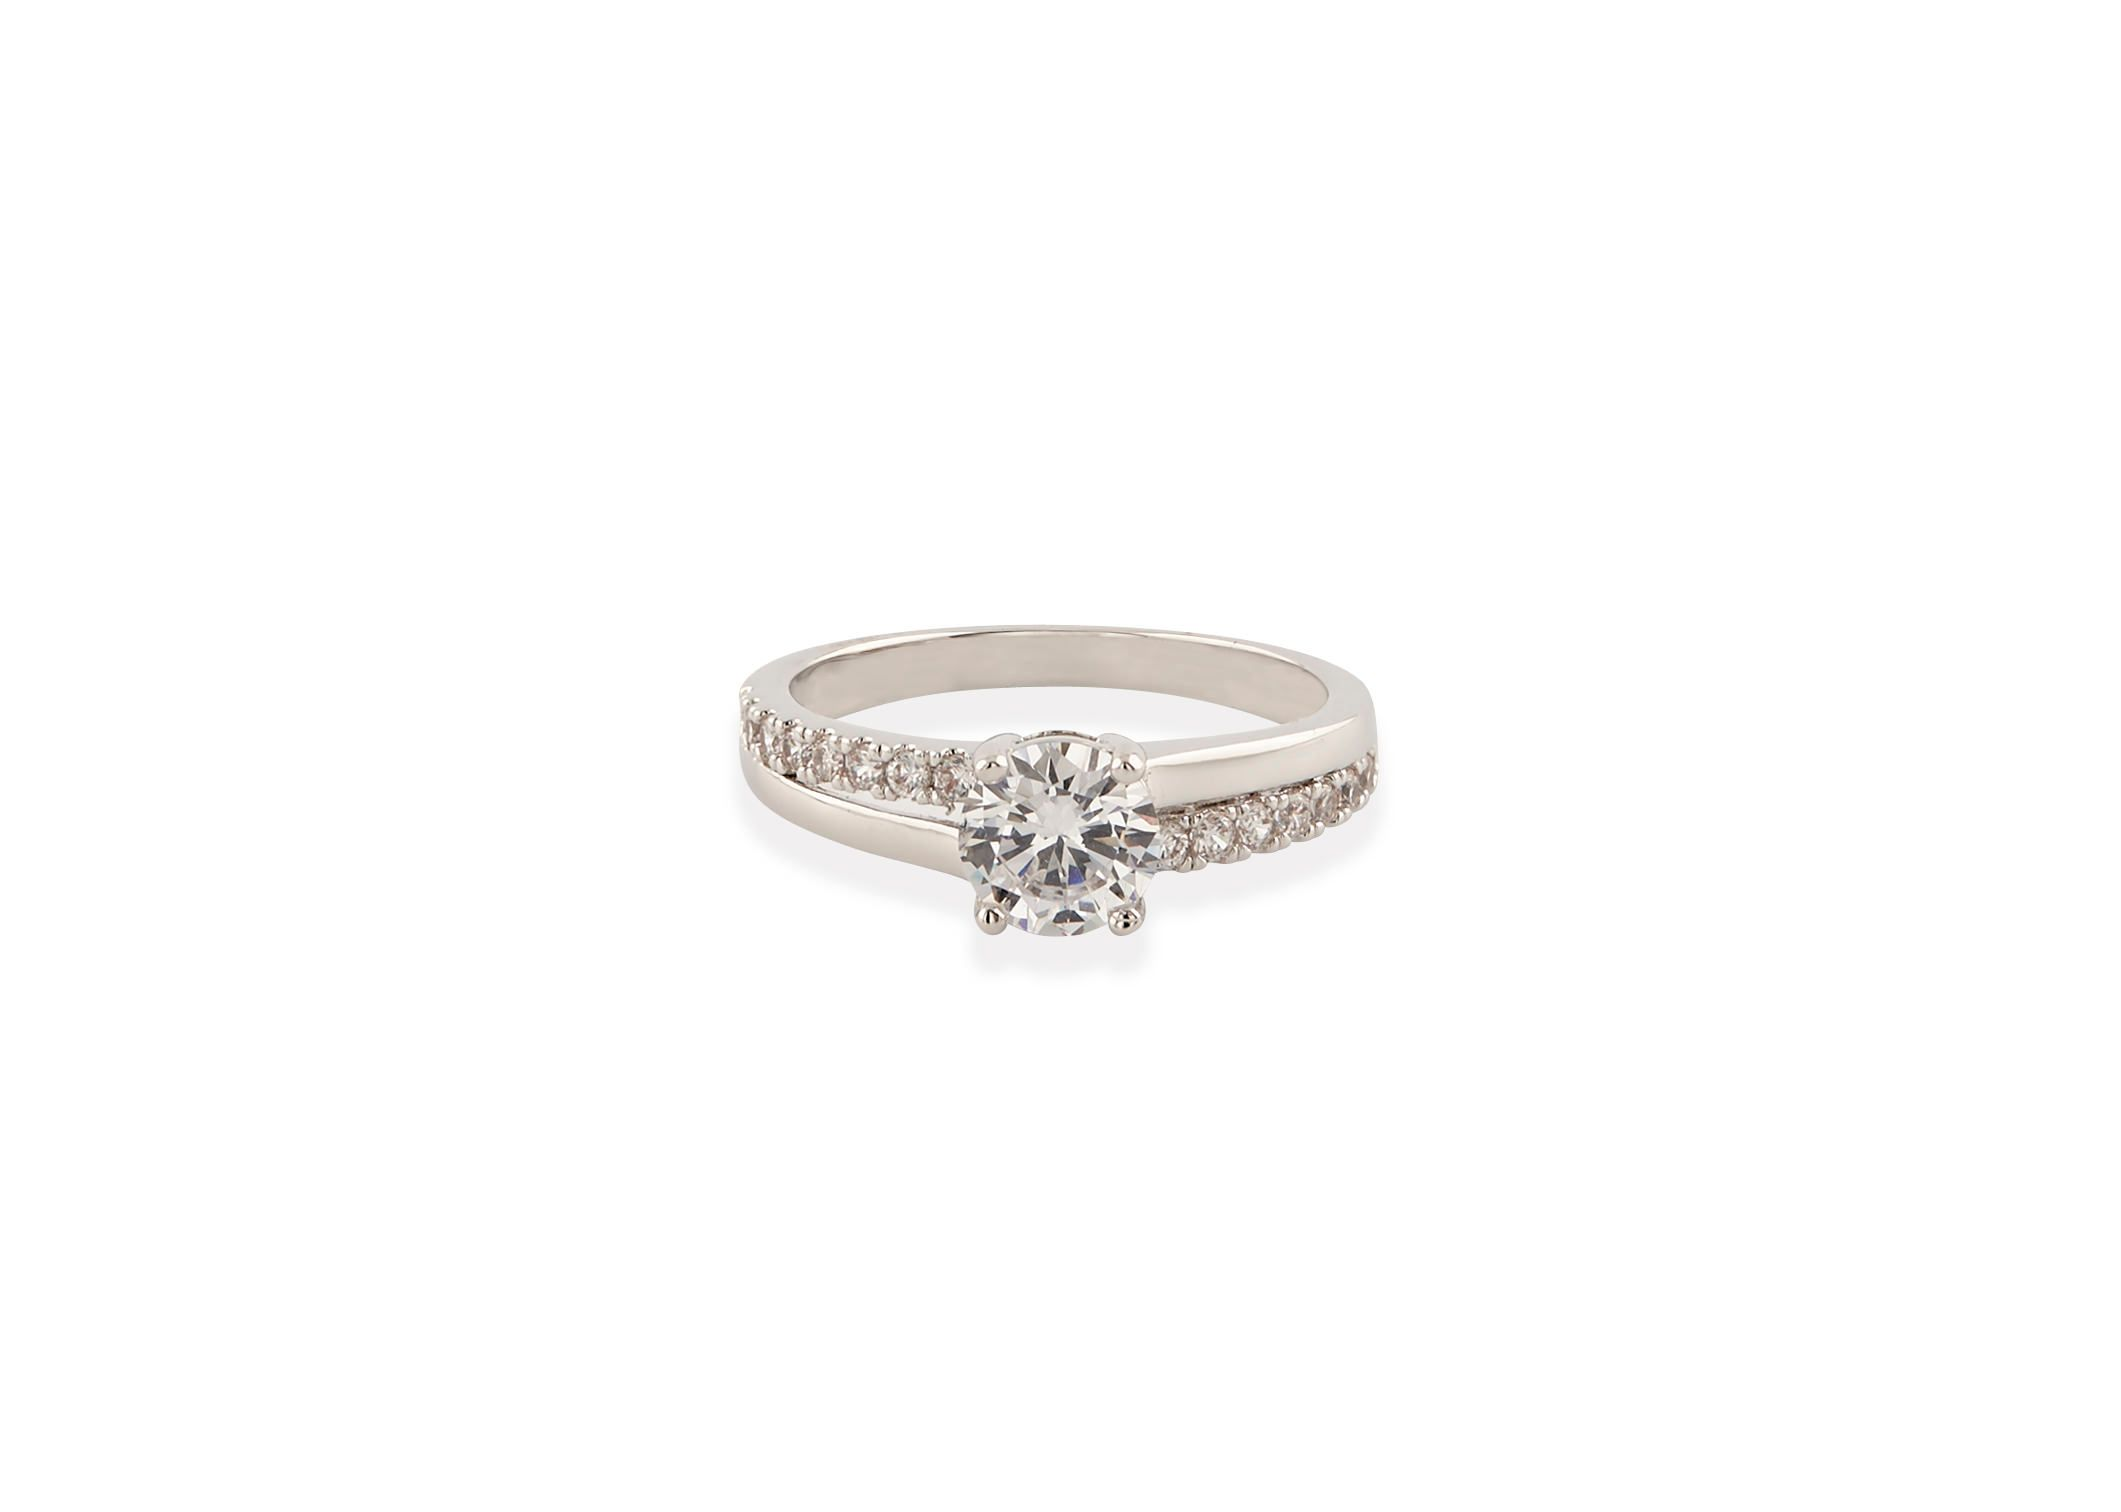 buckley london attract ring